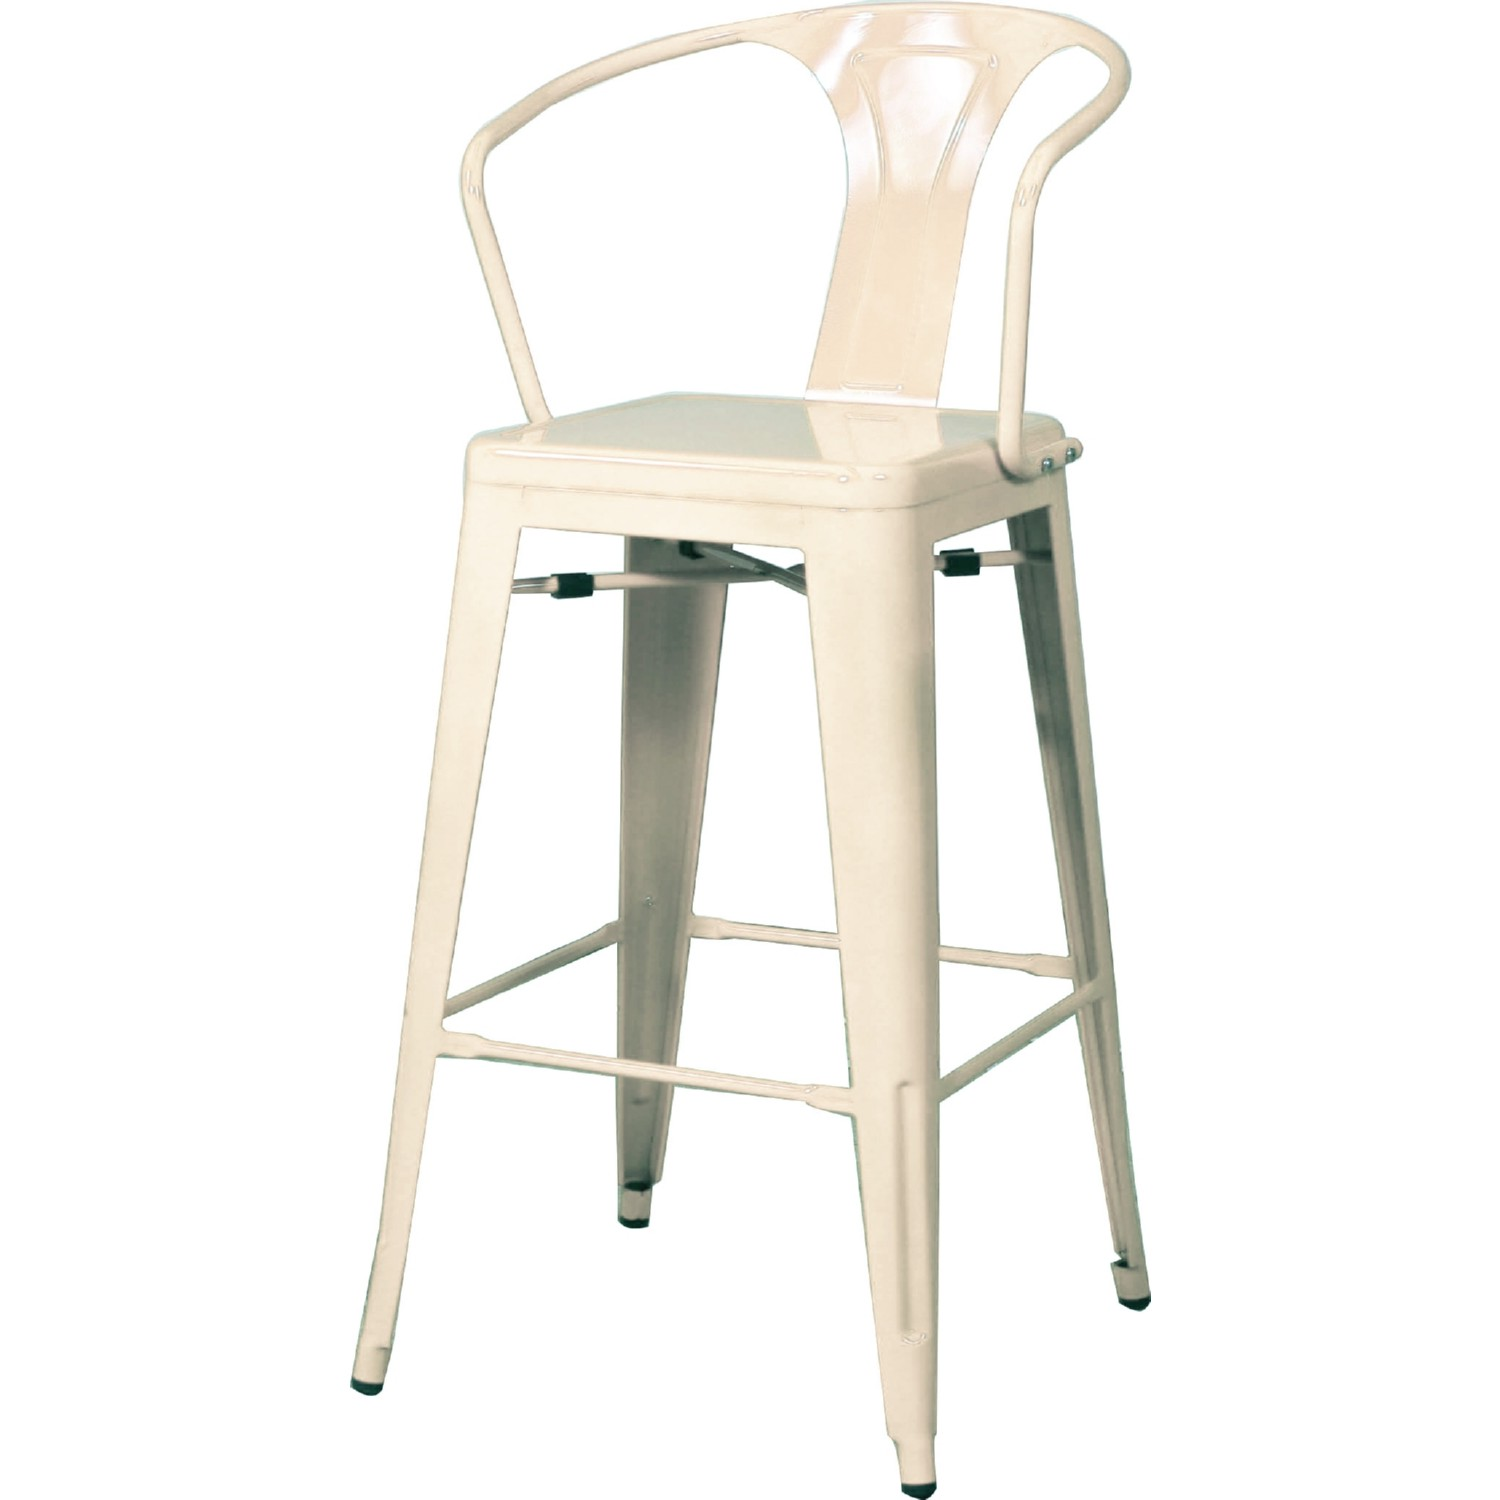 Terrific Metropolis Metal Counter Stool In White Powder Coated Steel Set Of 4 By New Pacific Direct Pabps2019 Chair Design Images Pabps2019Com